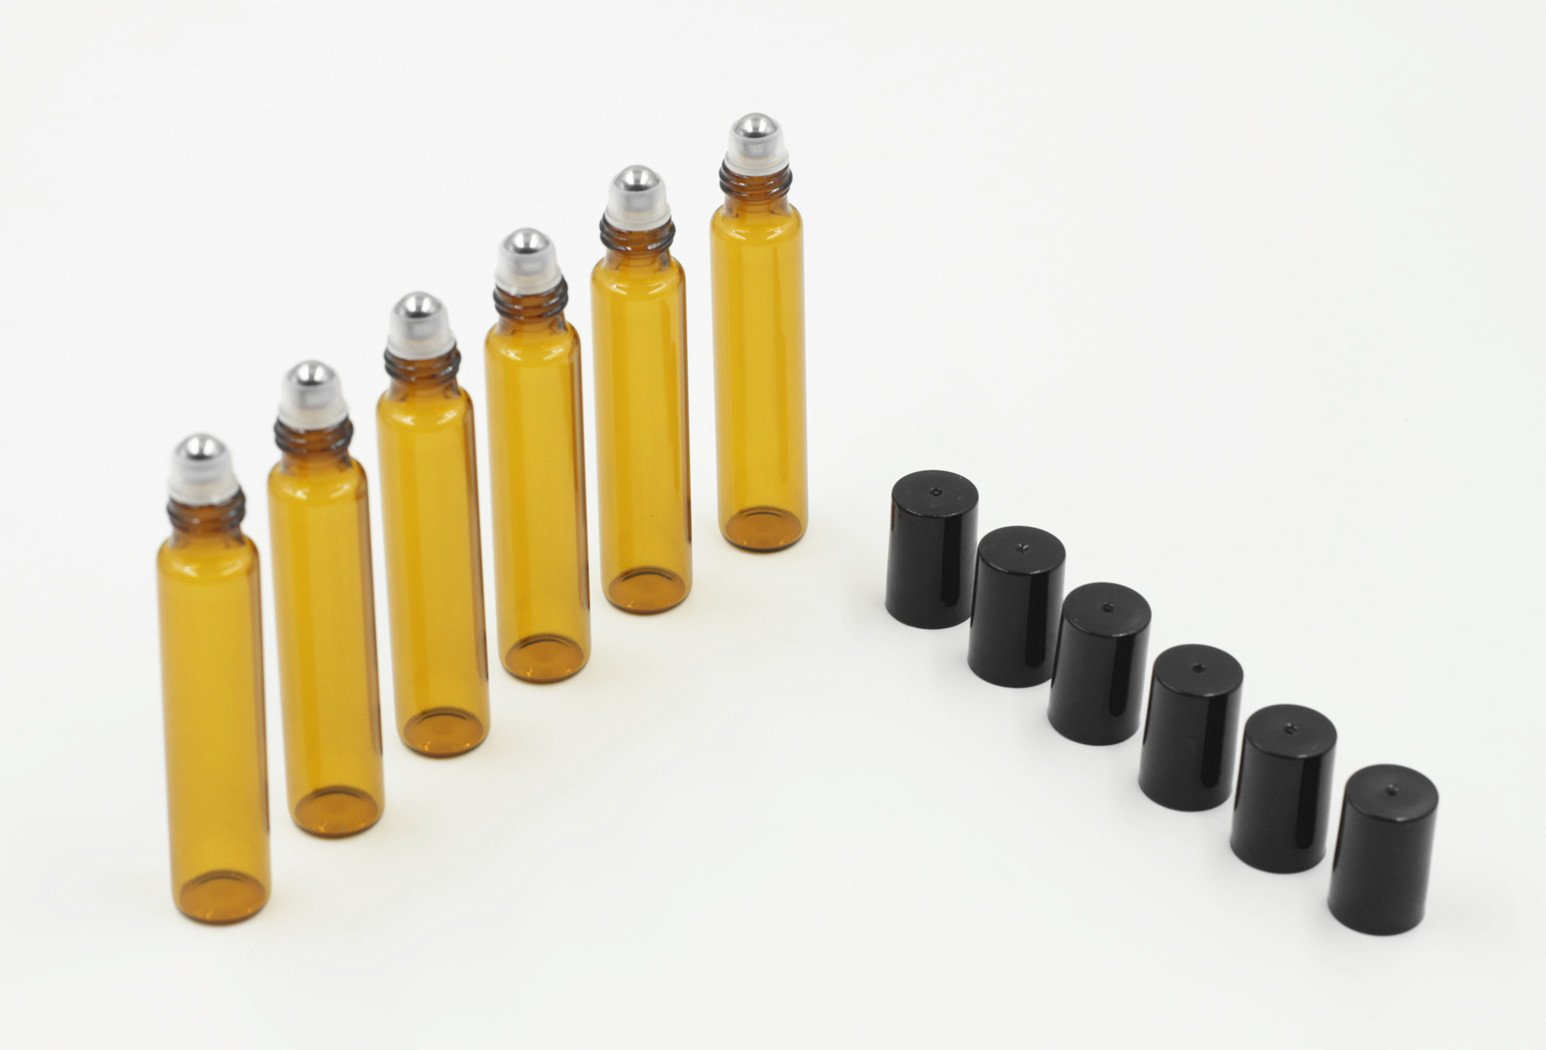 10ml Amber Glass Roller Bottles Sample Vial--Set of 6 With Metal Ball for Lab,Fragrance Essential Oil,Aromatherapy,Perfumes and Lip Balms